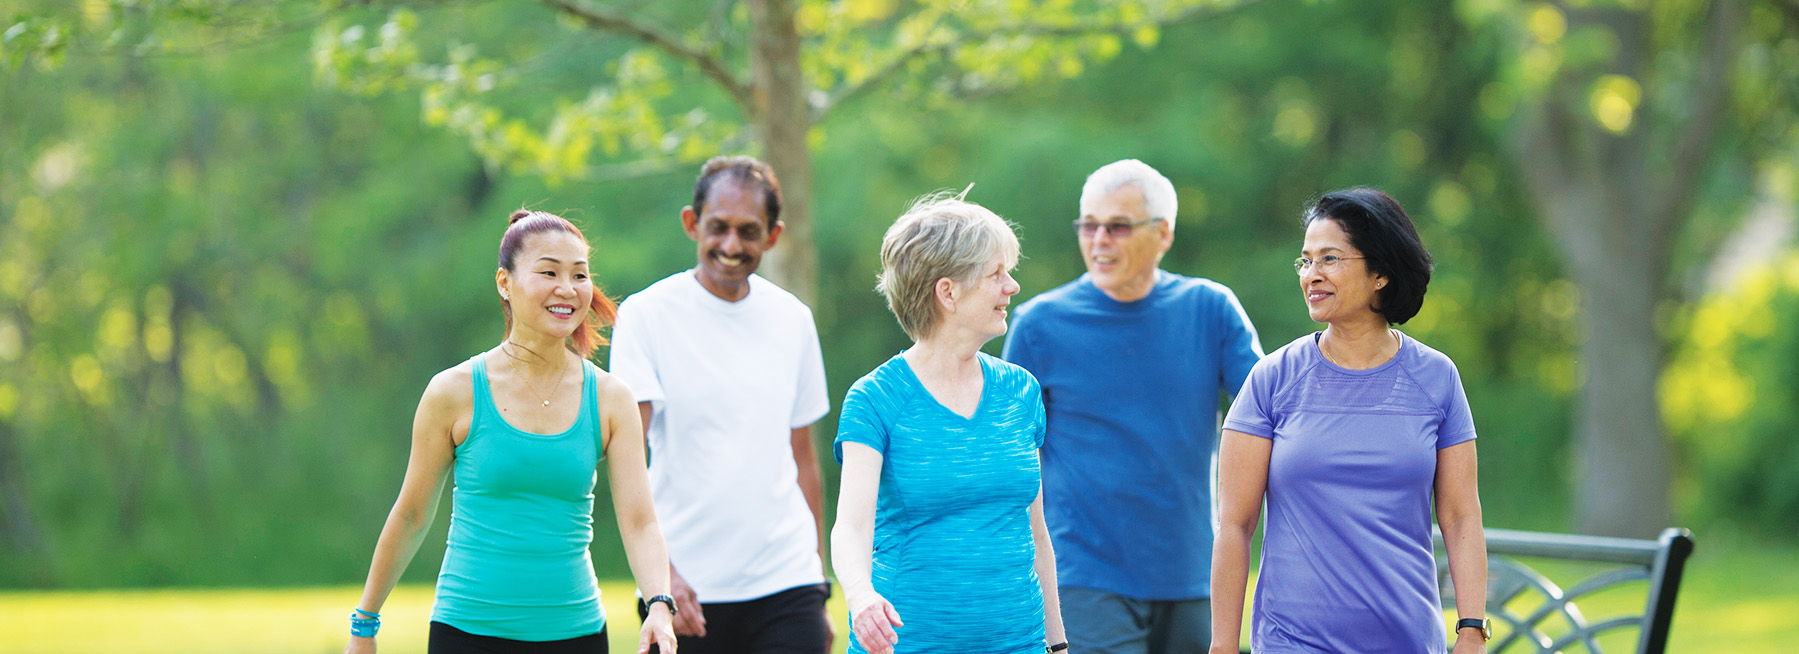 Five seniors walking together for better health and fitness